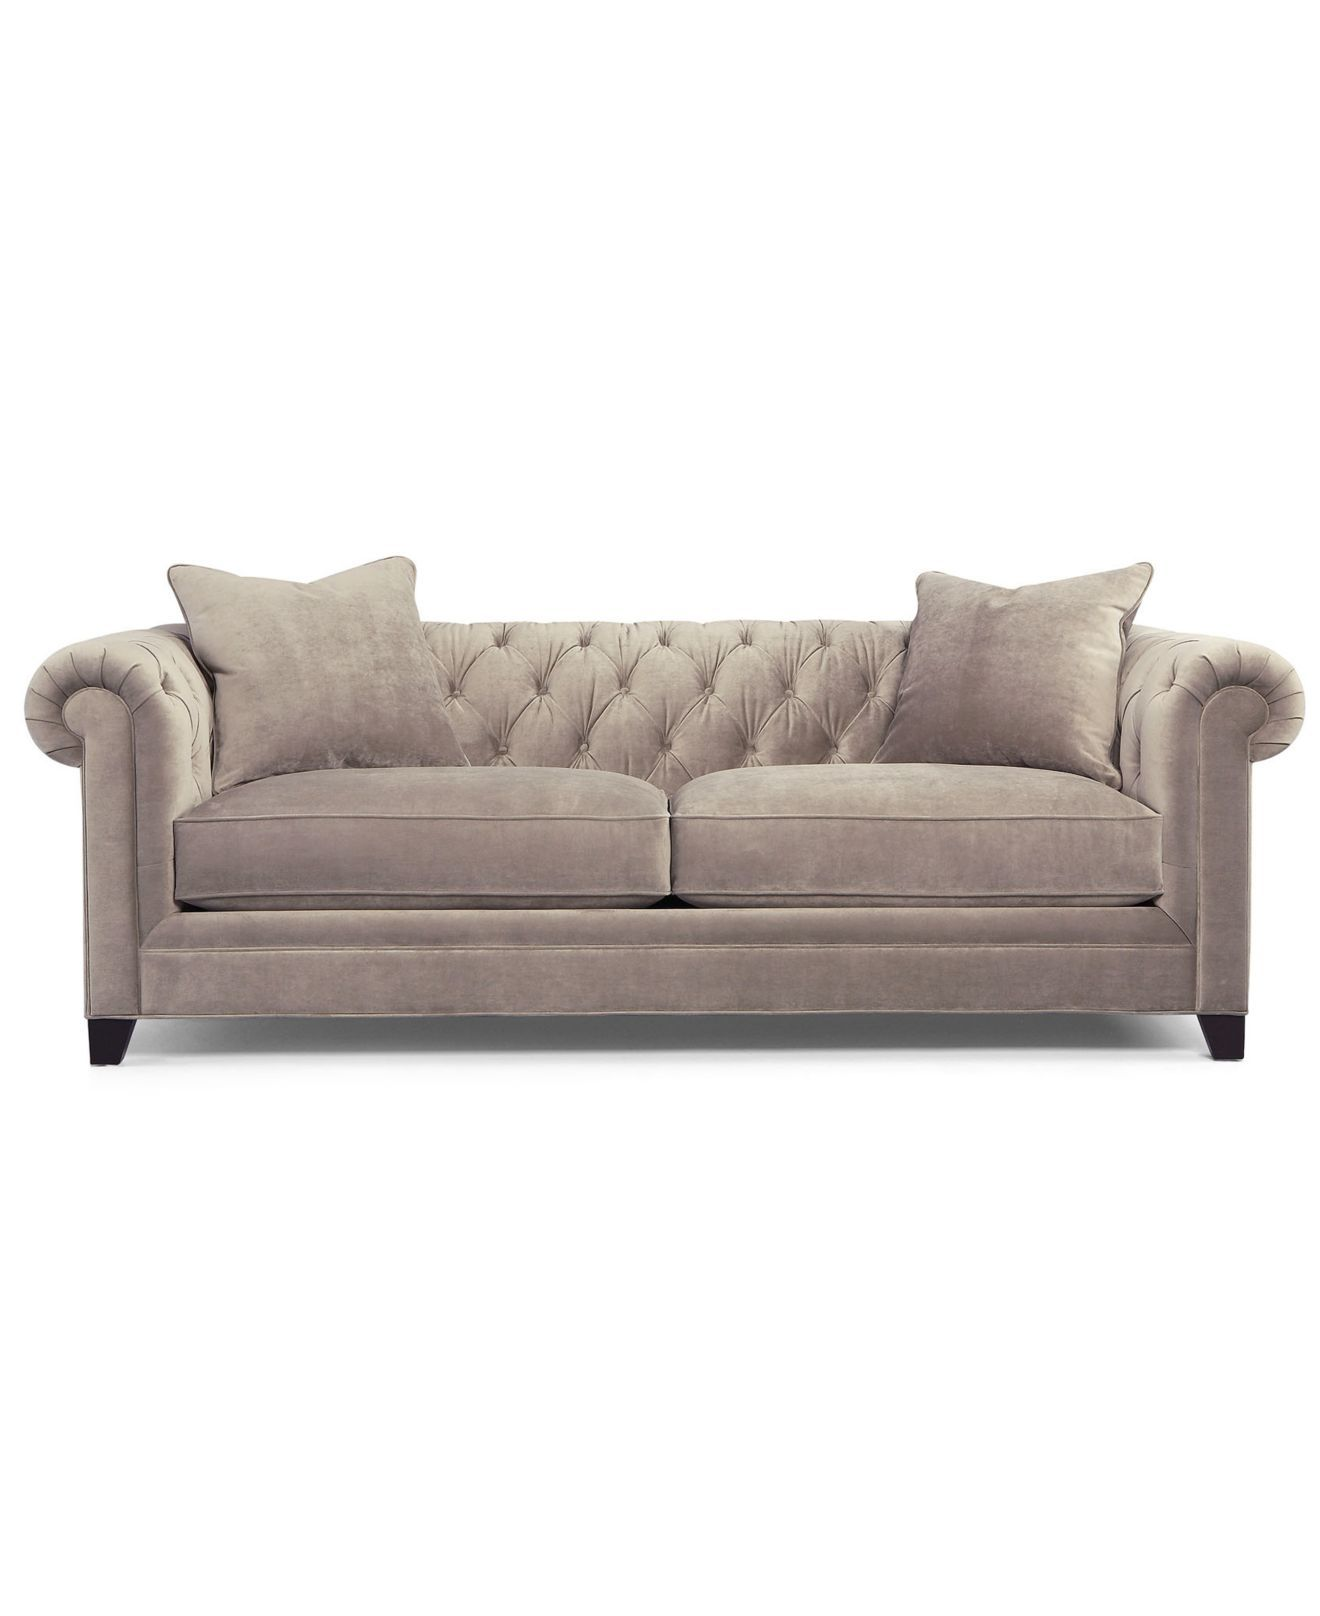 Saybridge 92 Fabric Sofa Created For Macy S Living Room Furniture Collections